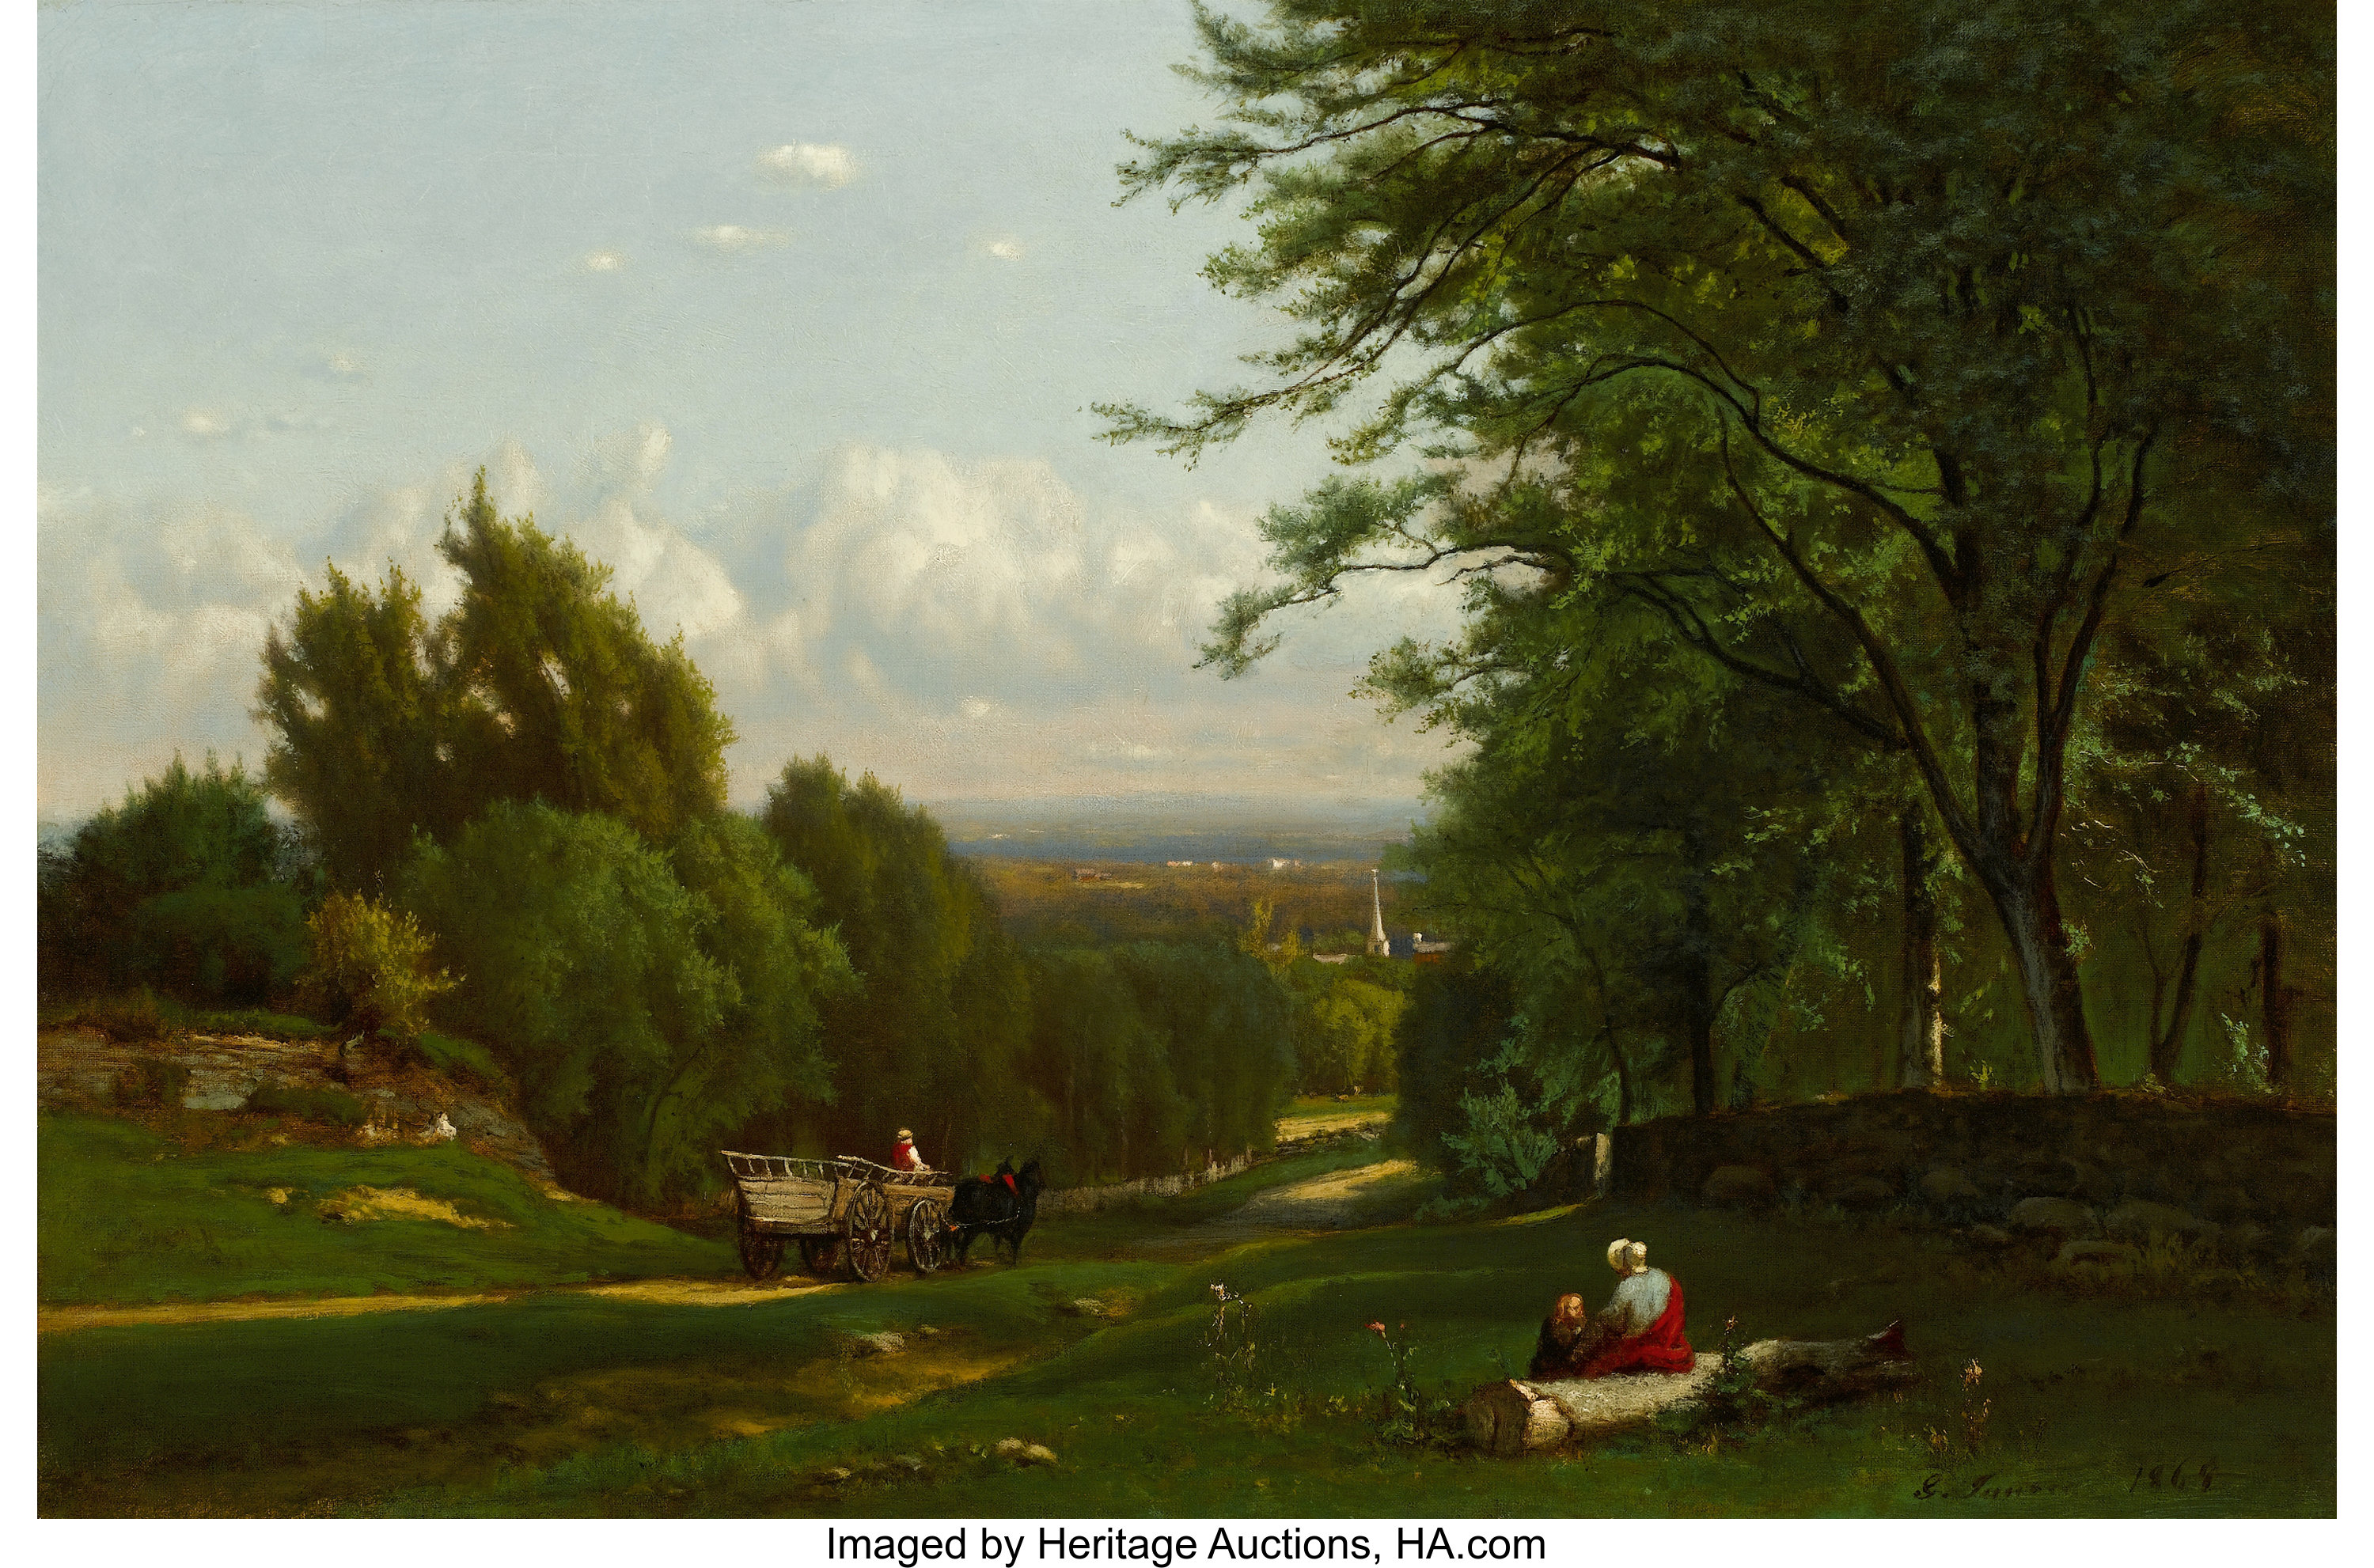 Auctions In My Area >> George Inness Paintings for Sale | Value Guide | Heritage Auctions